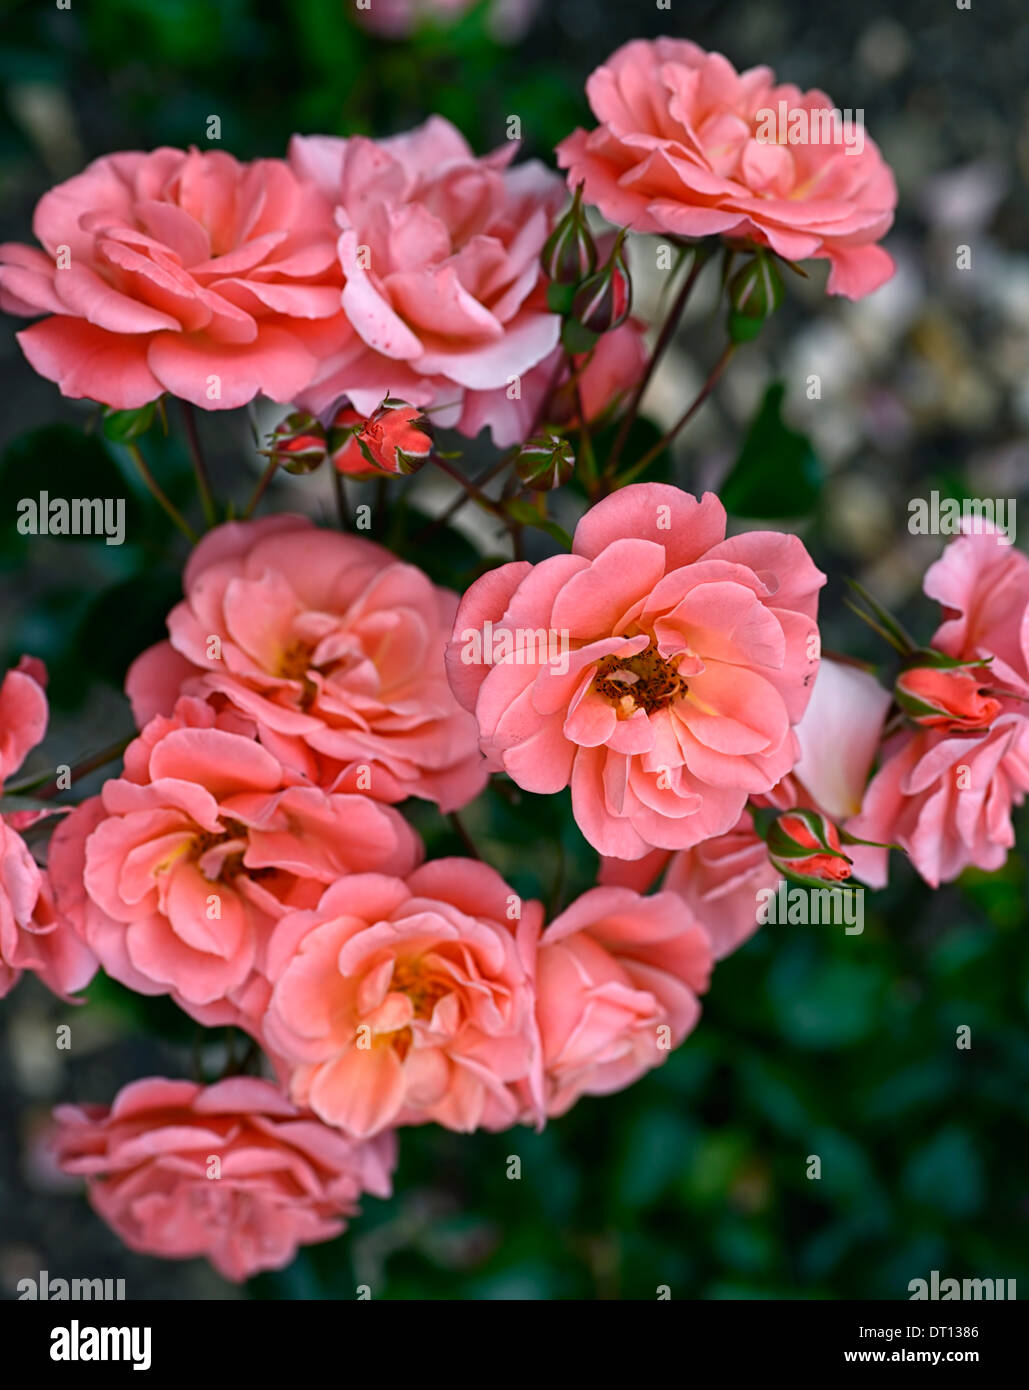 rosa fascination poulmax shrub rose roses pink flower flowering bloom blooming - Stock Image